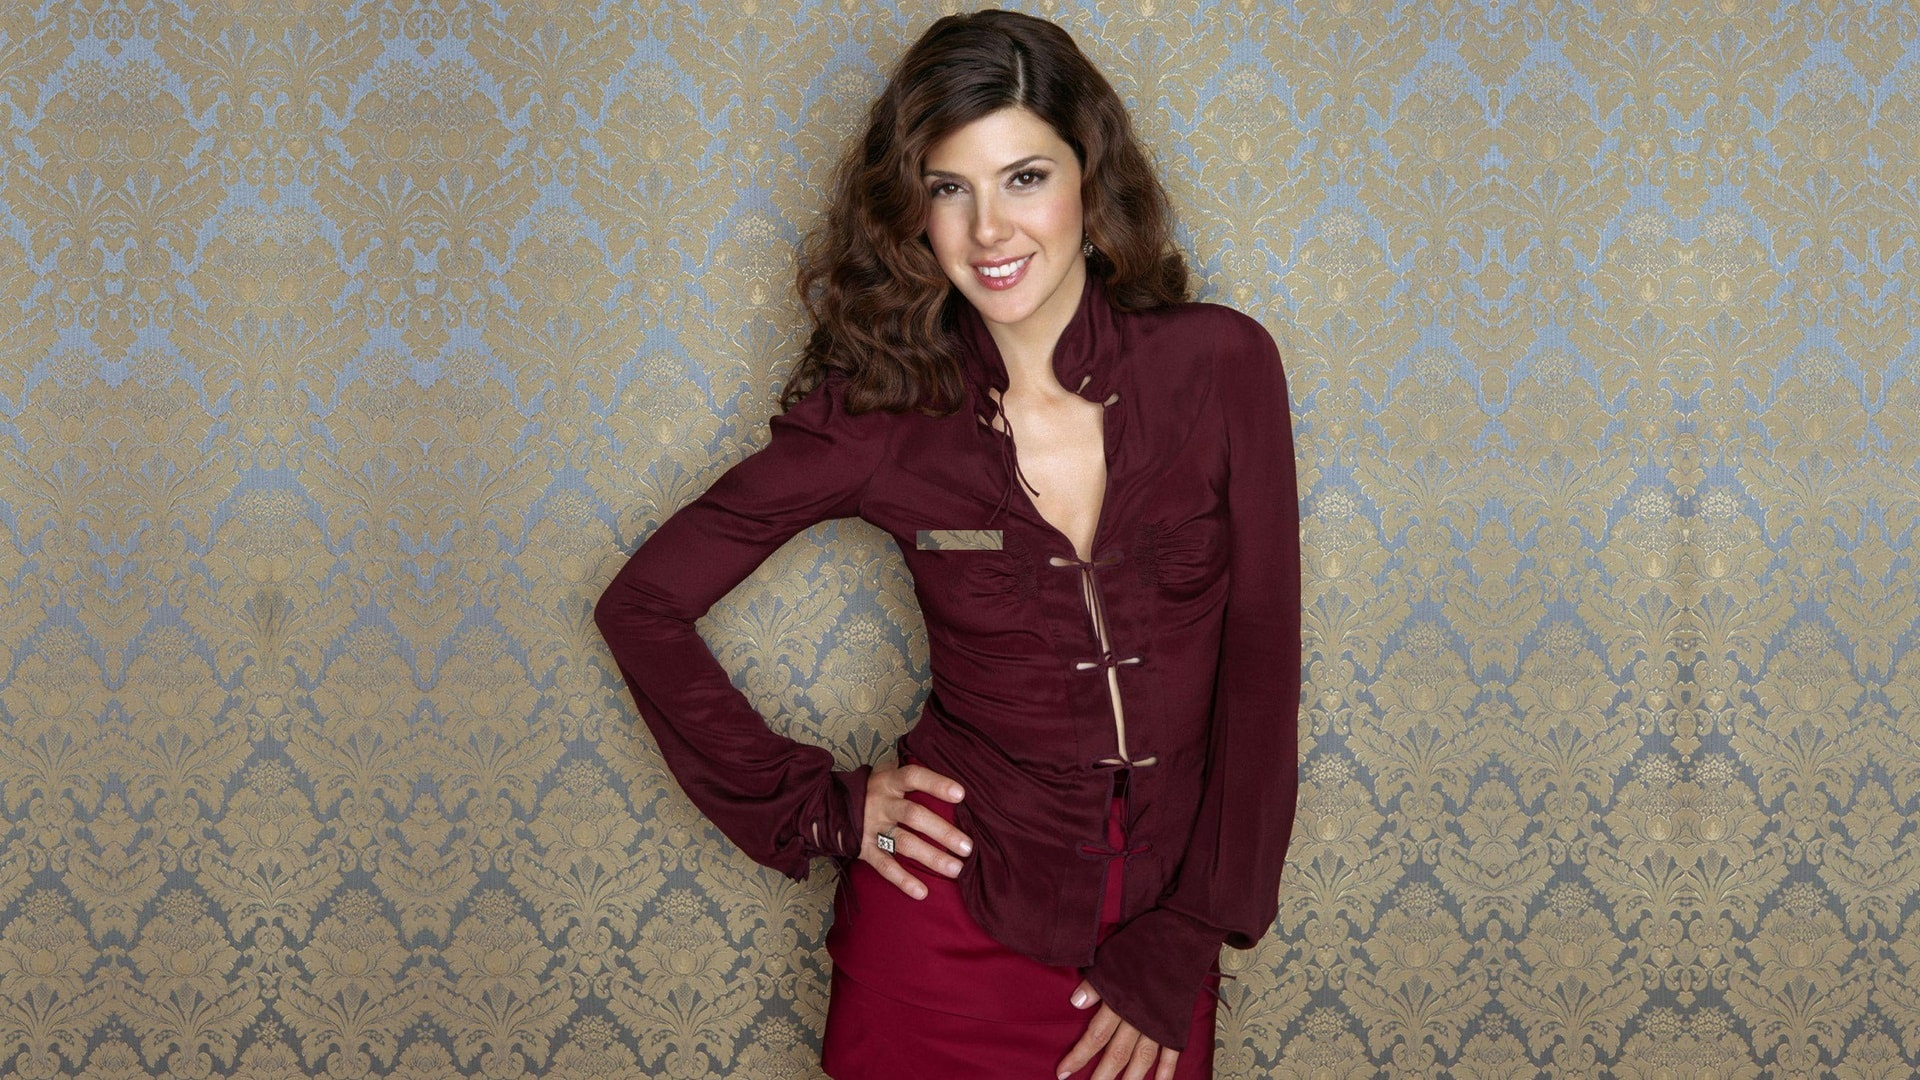 Marisa Tomei HD Wallpapers 7wallpapersnet 1920x1080